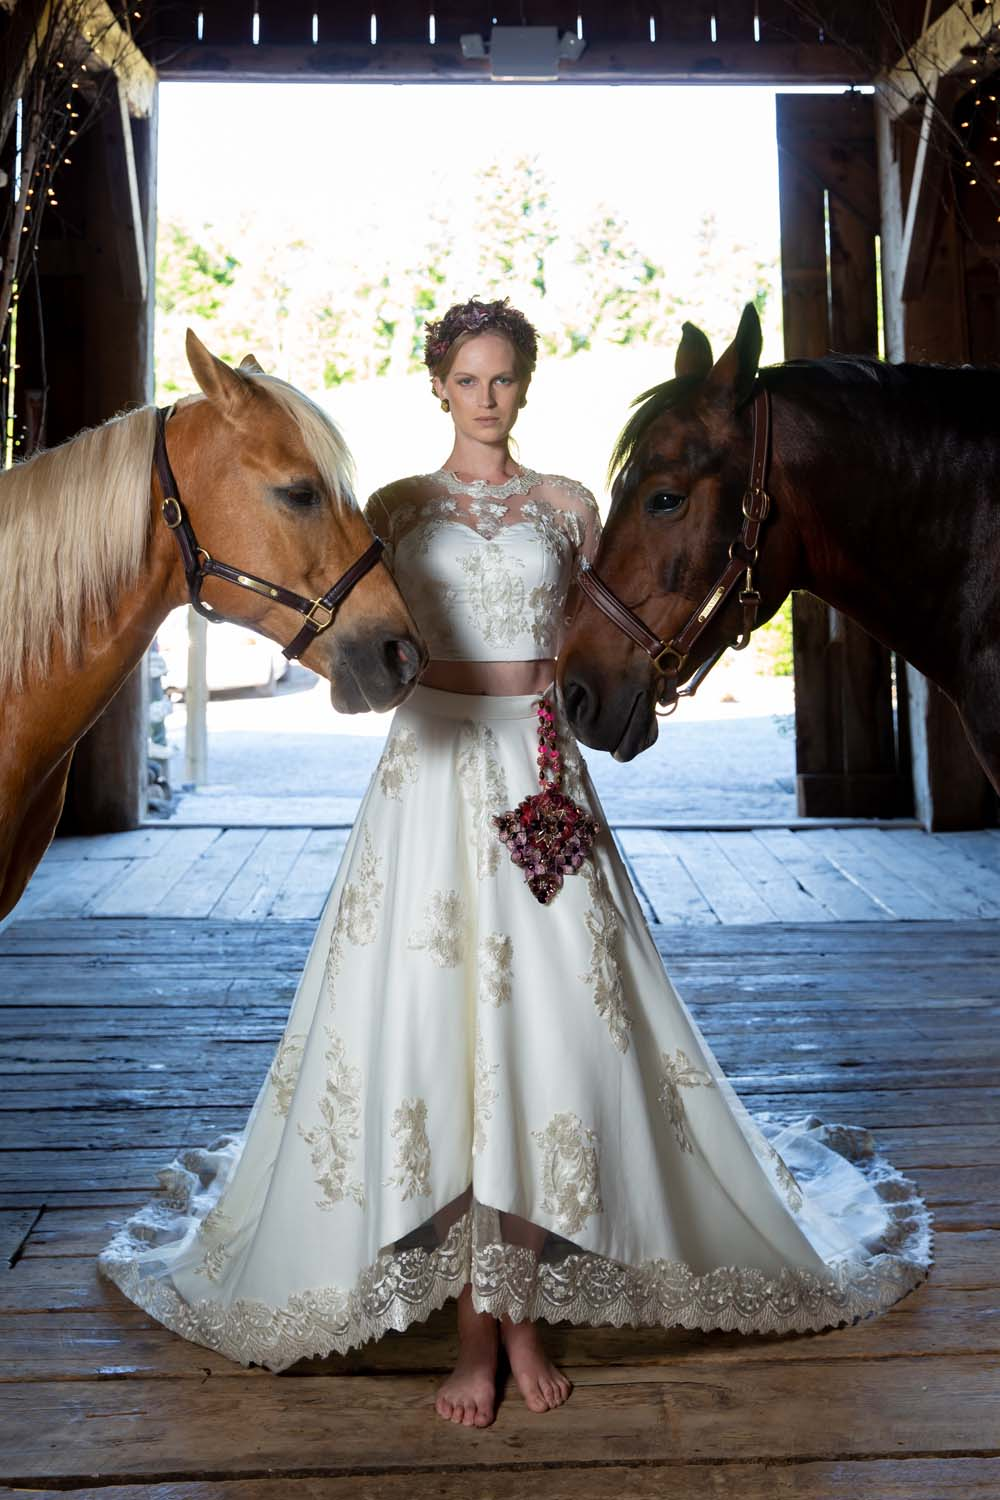 This Styled Shoot Was Inspired By Medieval Royalty - Bride and horses